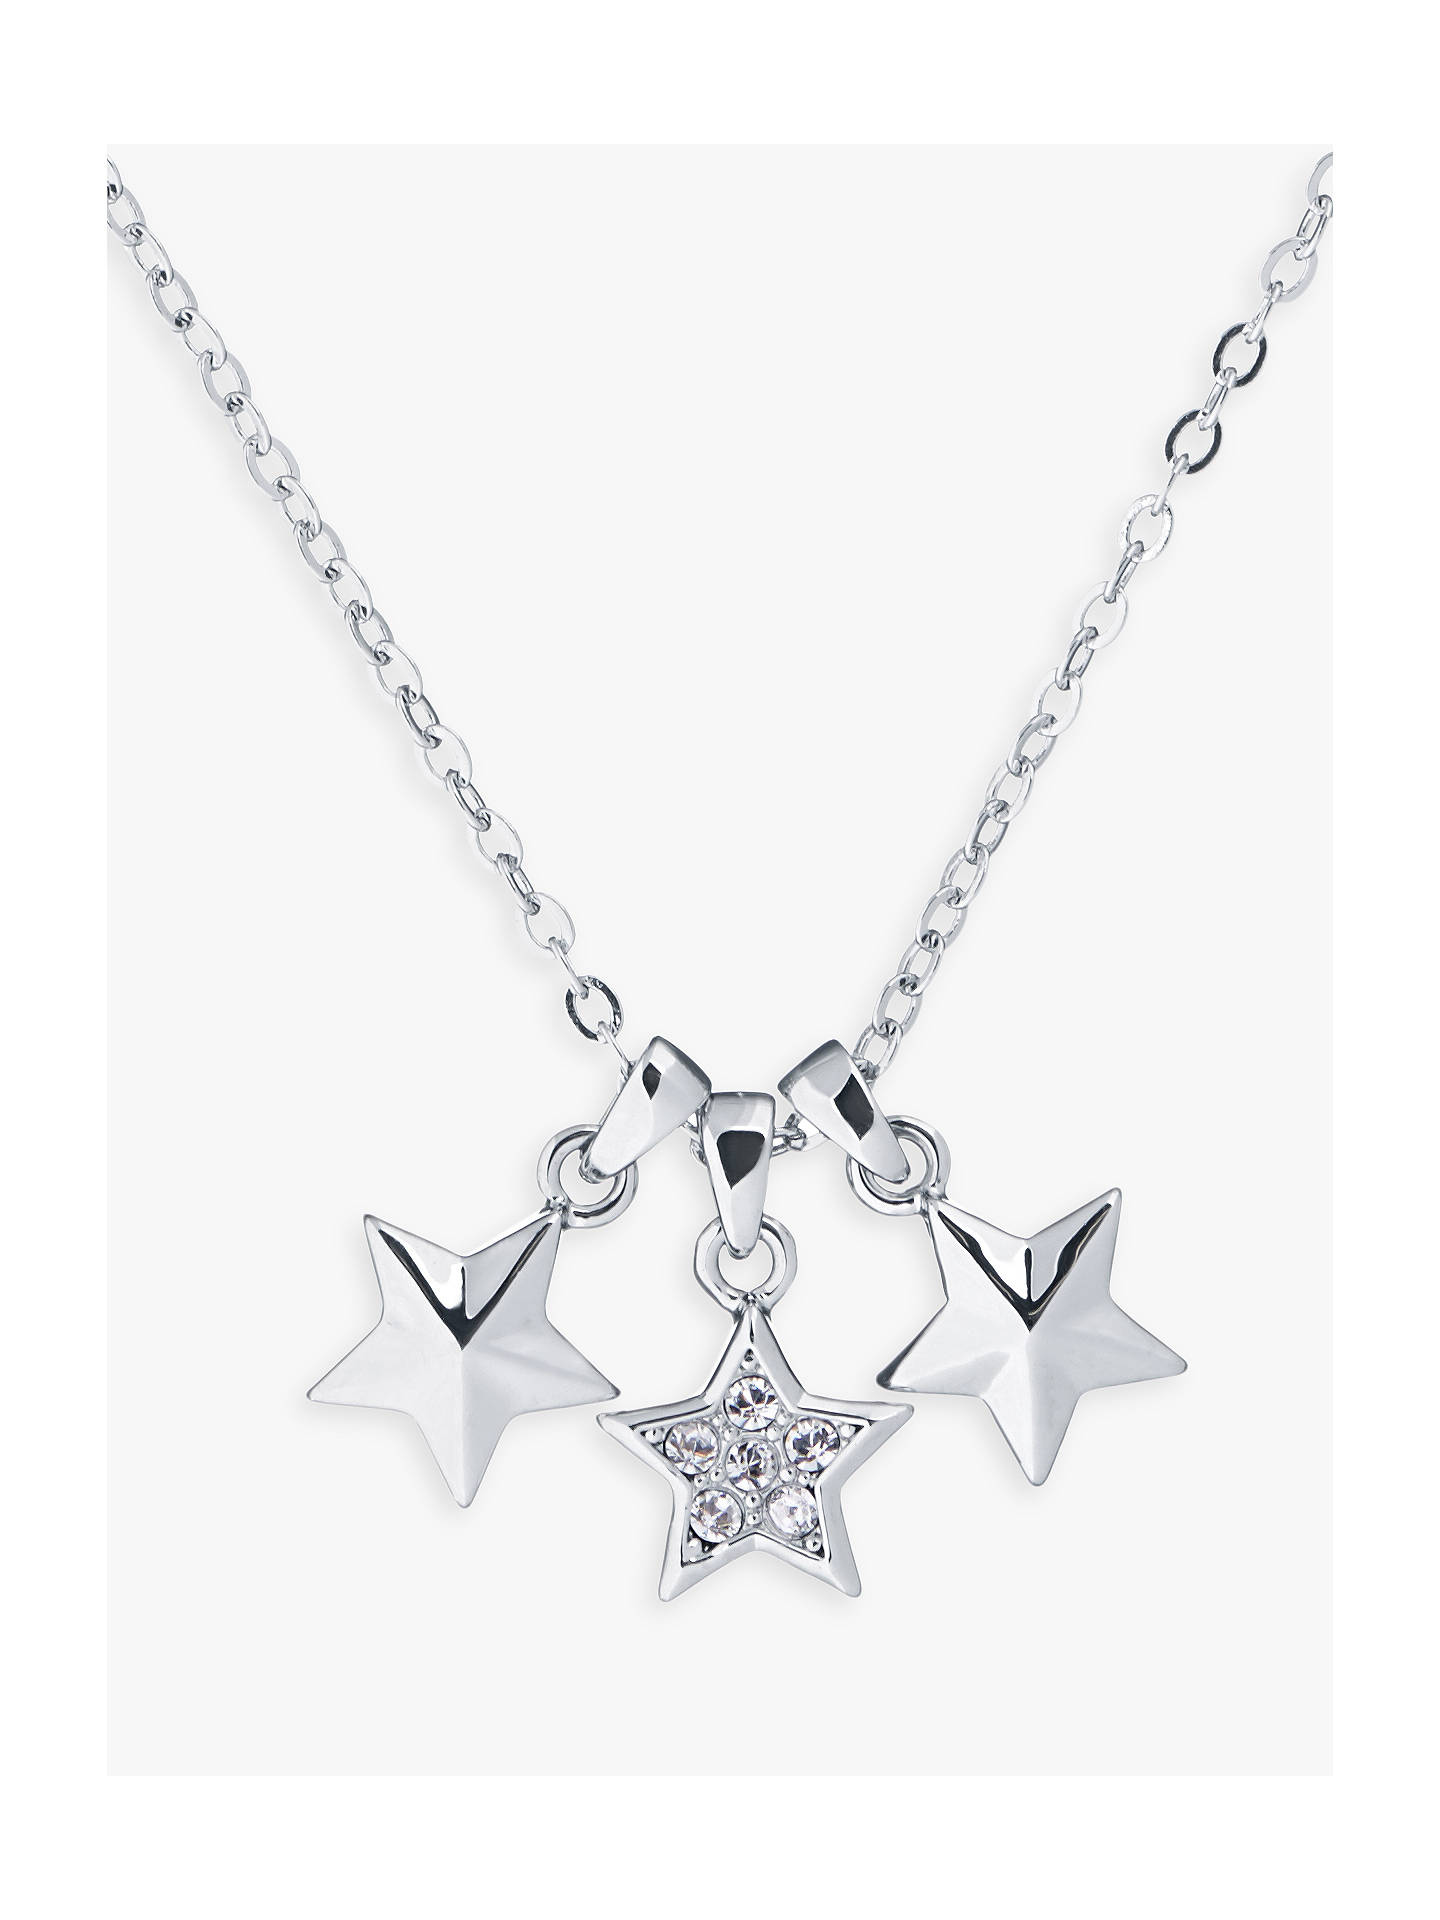 BuyTed Baker Shami Swarovski Crystal Triple Star Pendant Necklace, Silver Online at johnlewis.com